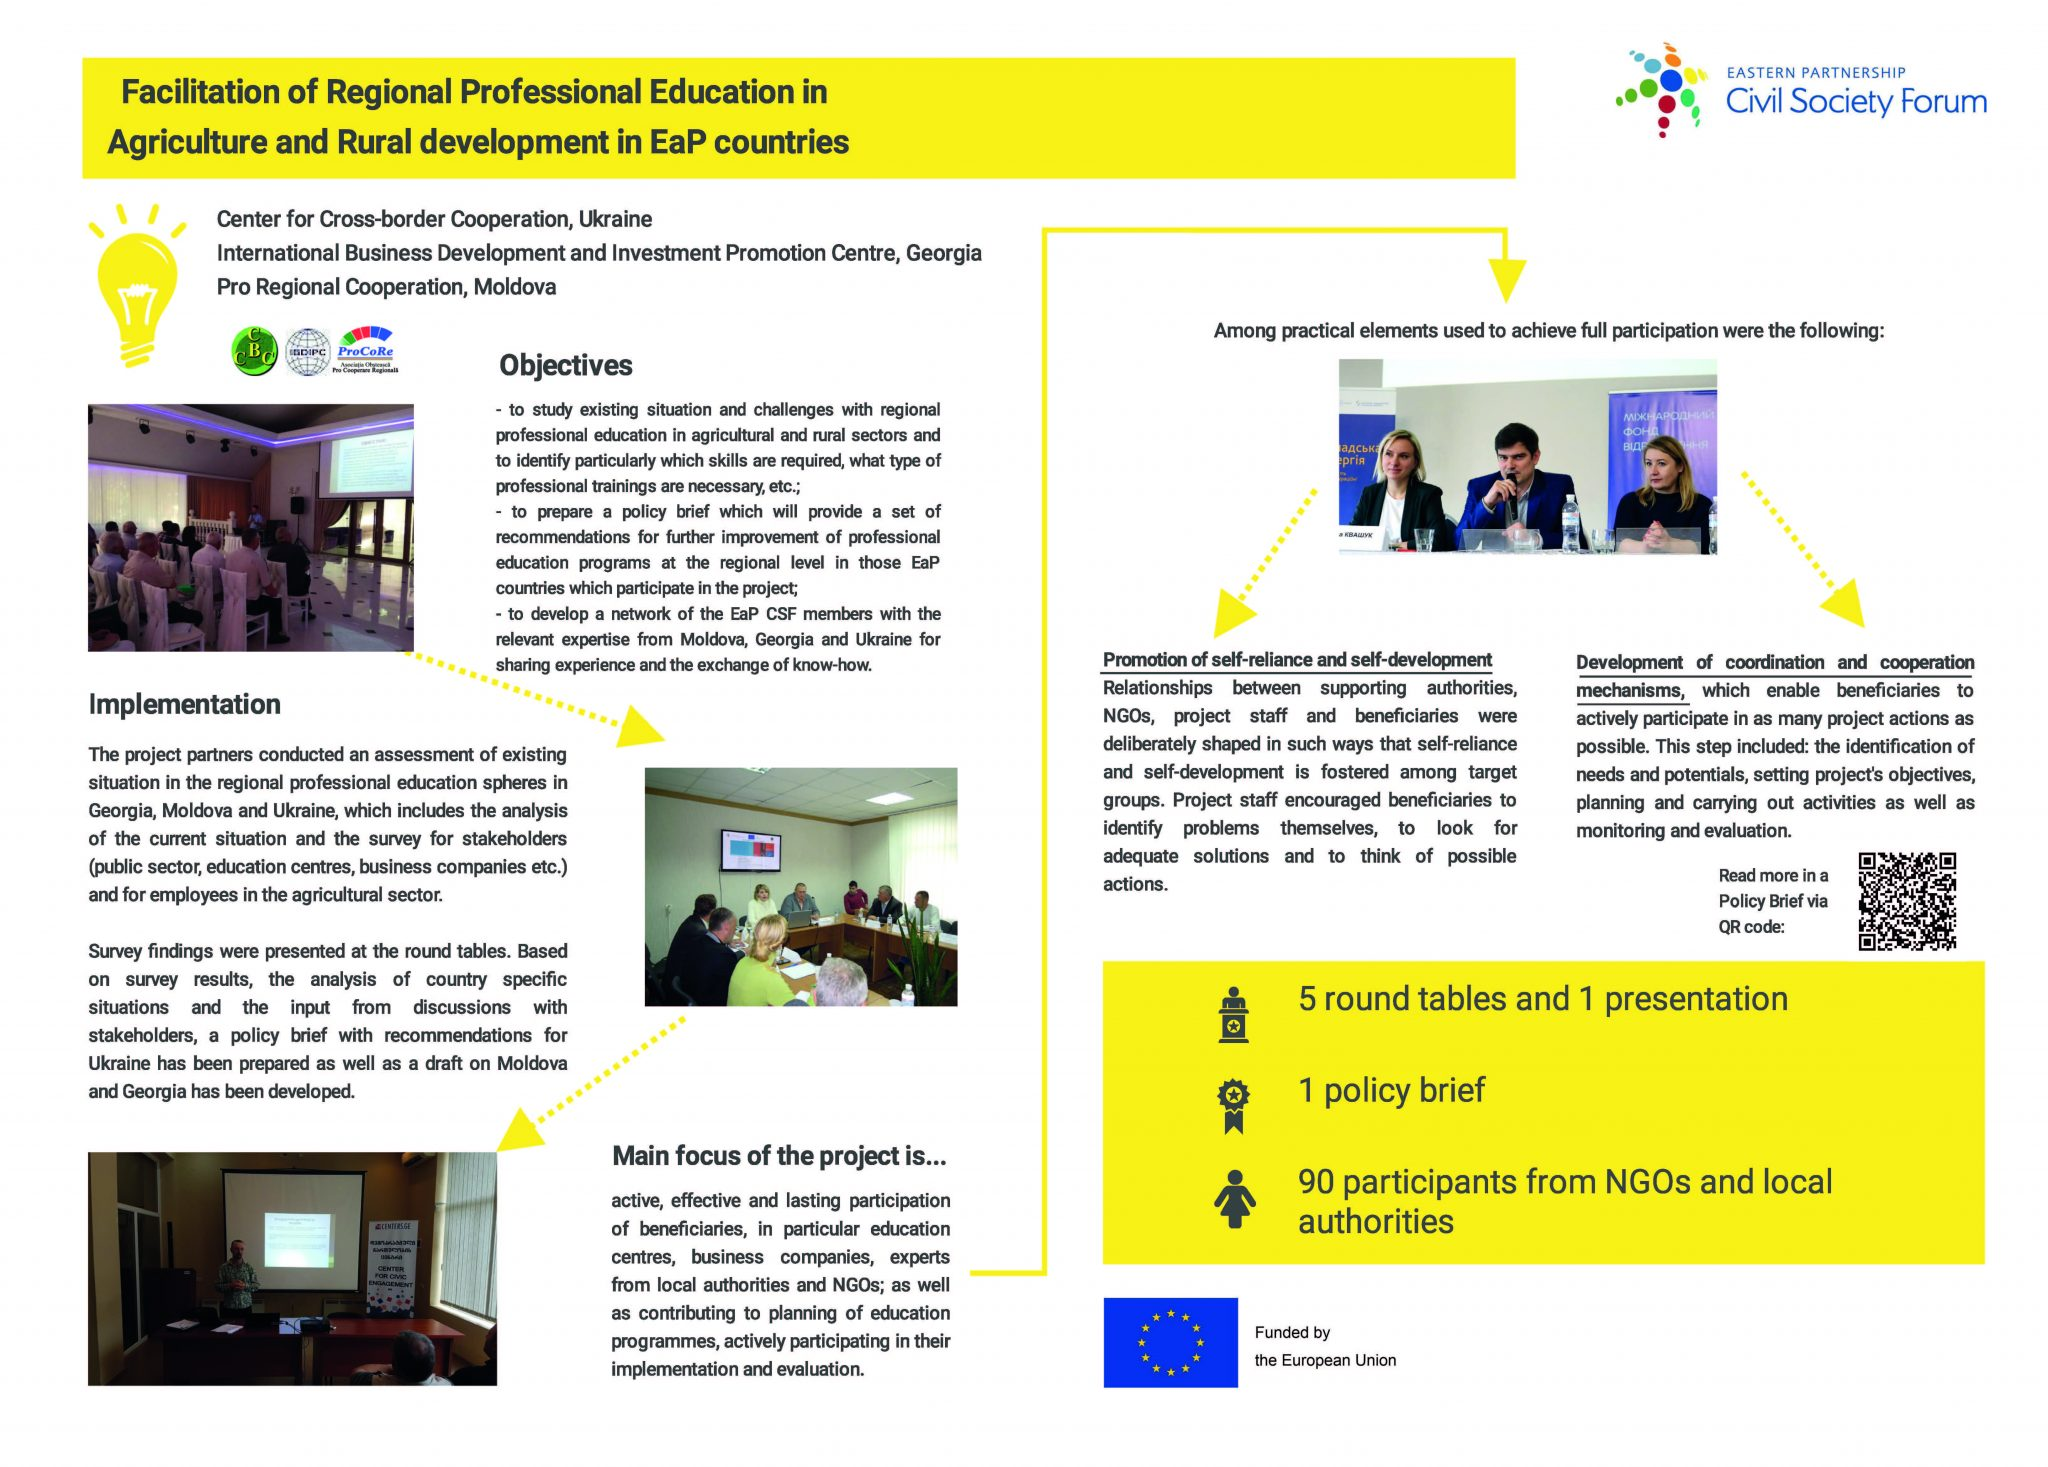 WG2 'Facilitation of Regional Professional Education in Agriculture and Rural Development in EaP countries'